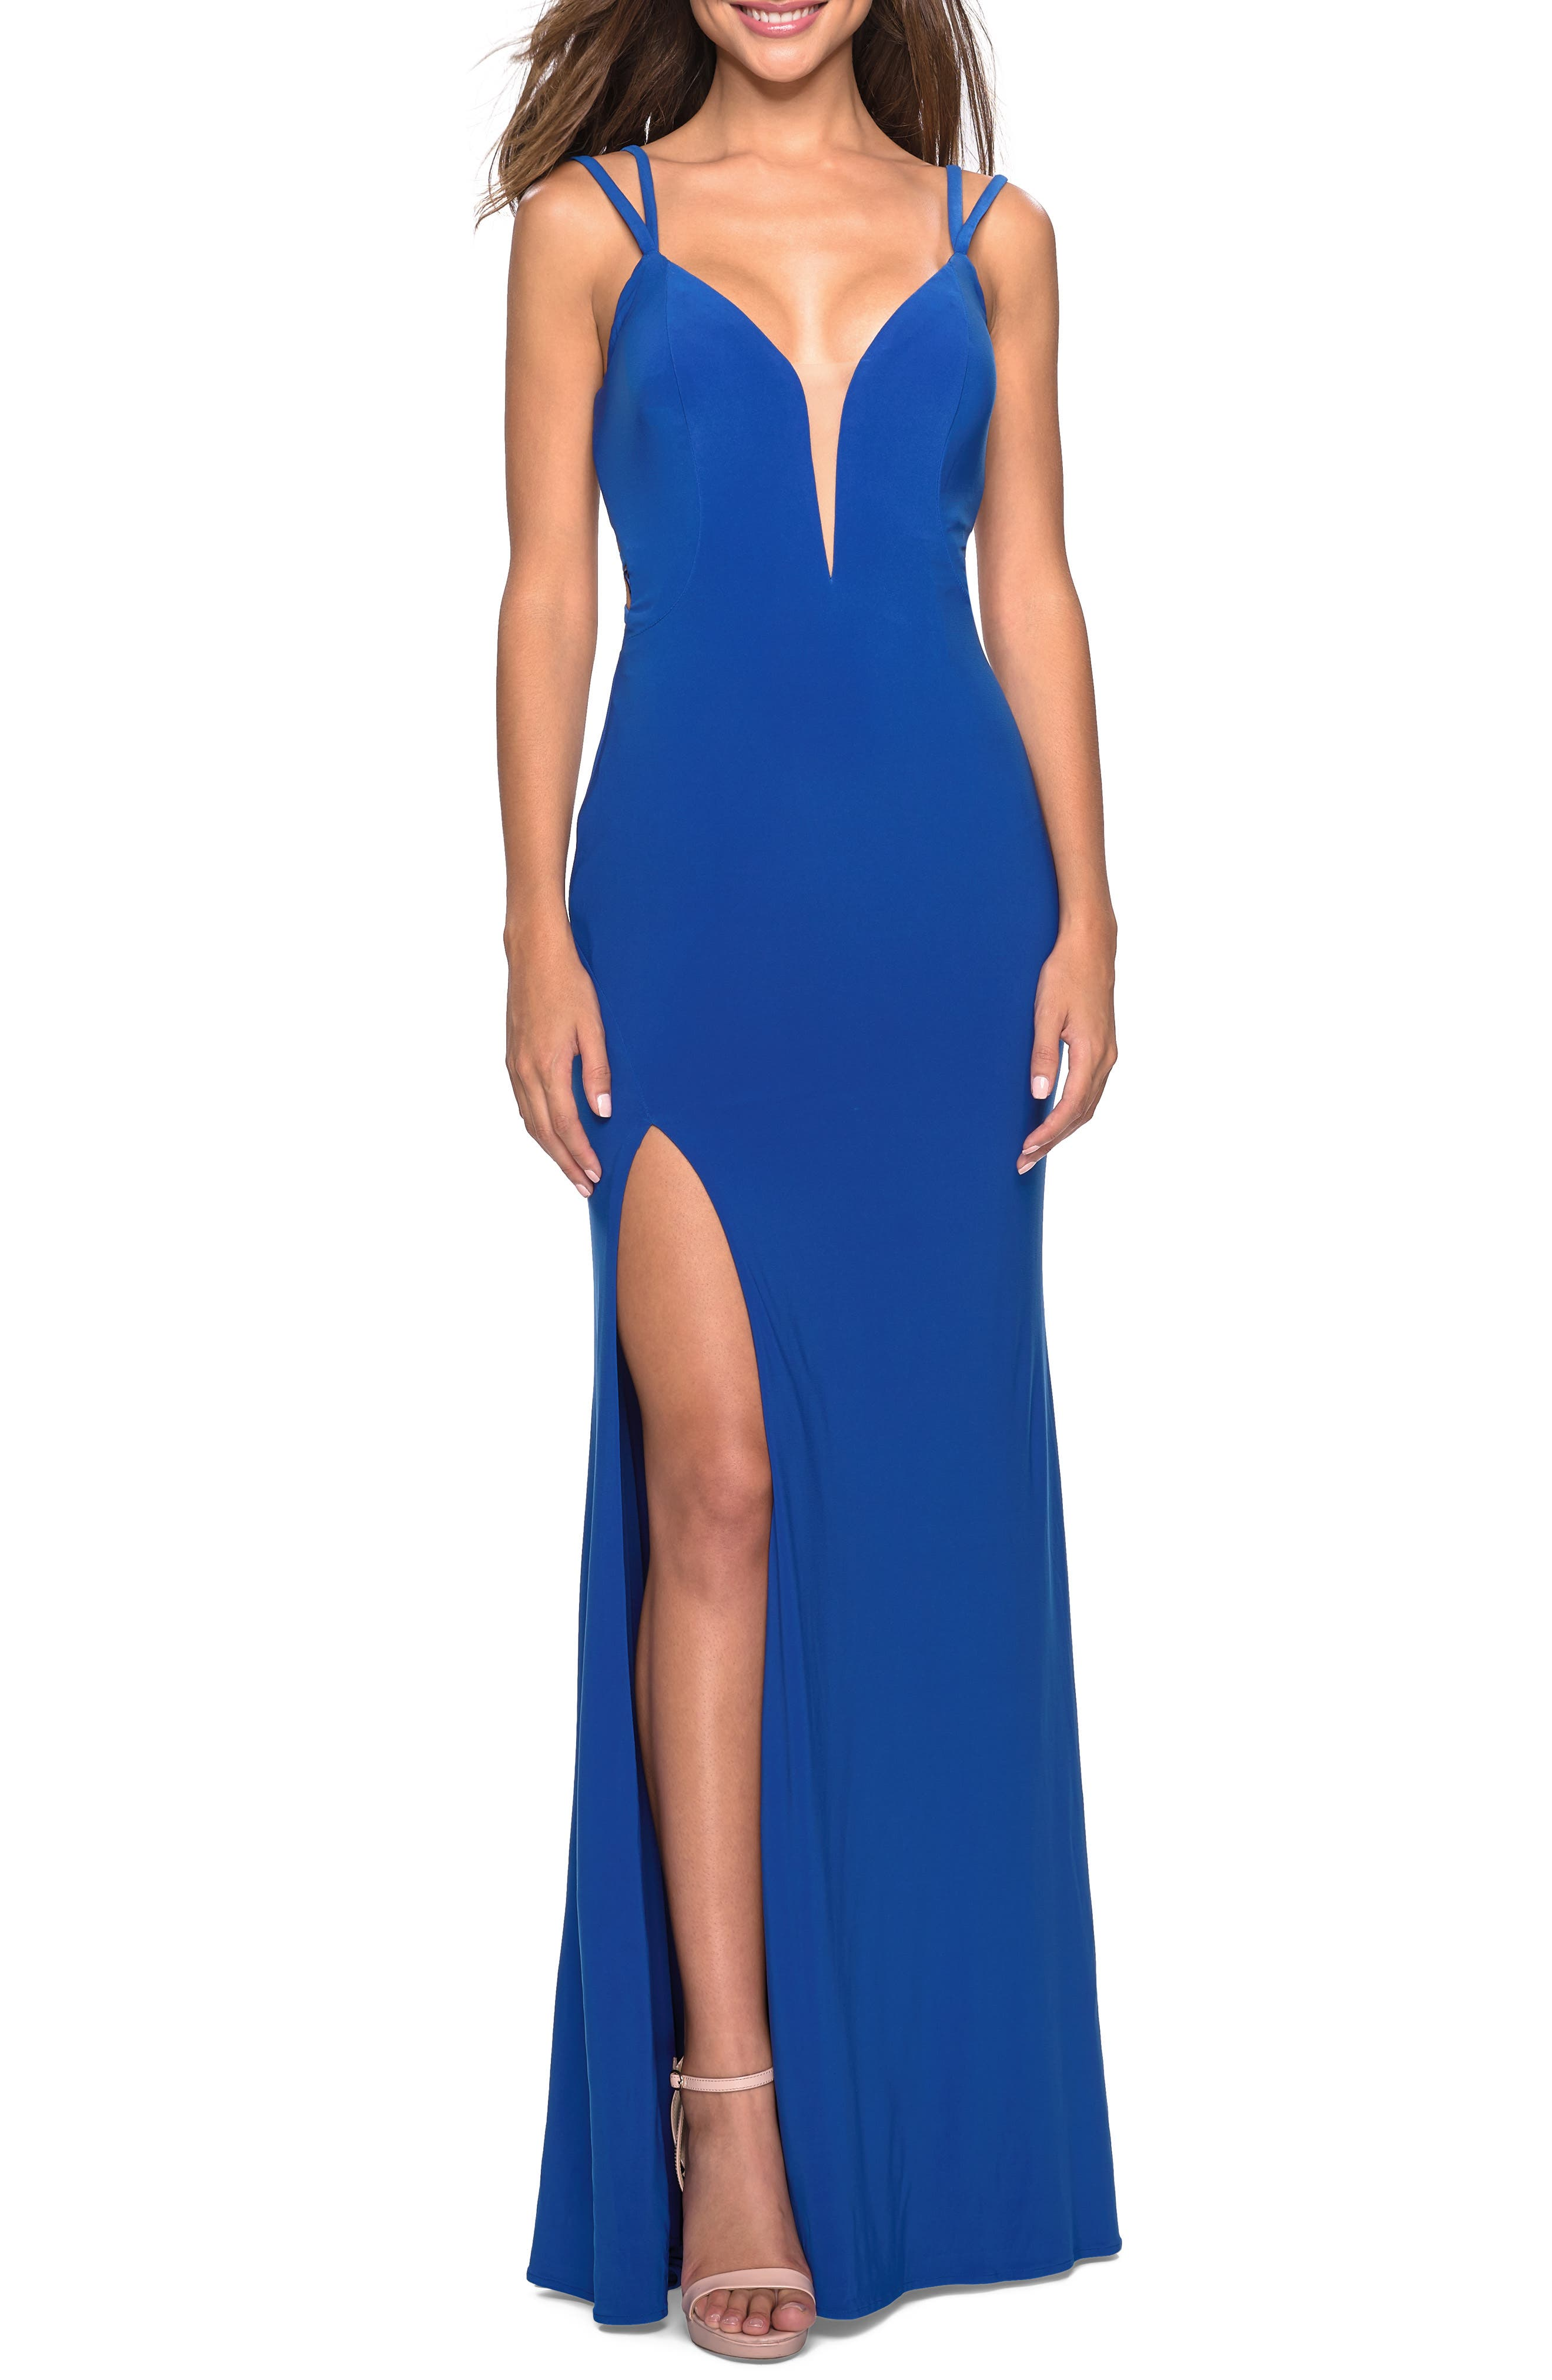 La Femme Strappy Back Fitted Jersey Evening Dress, Blue